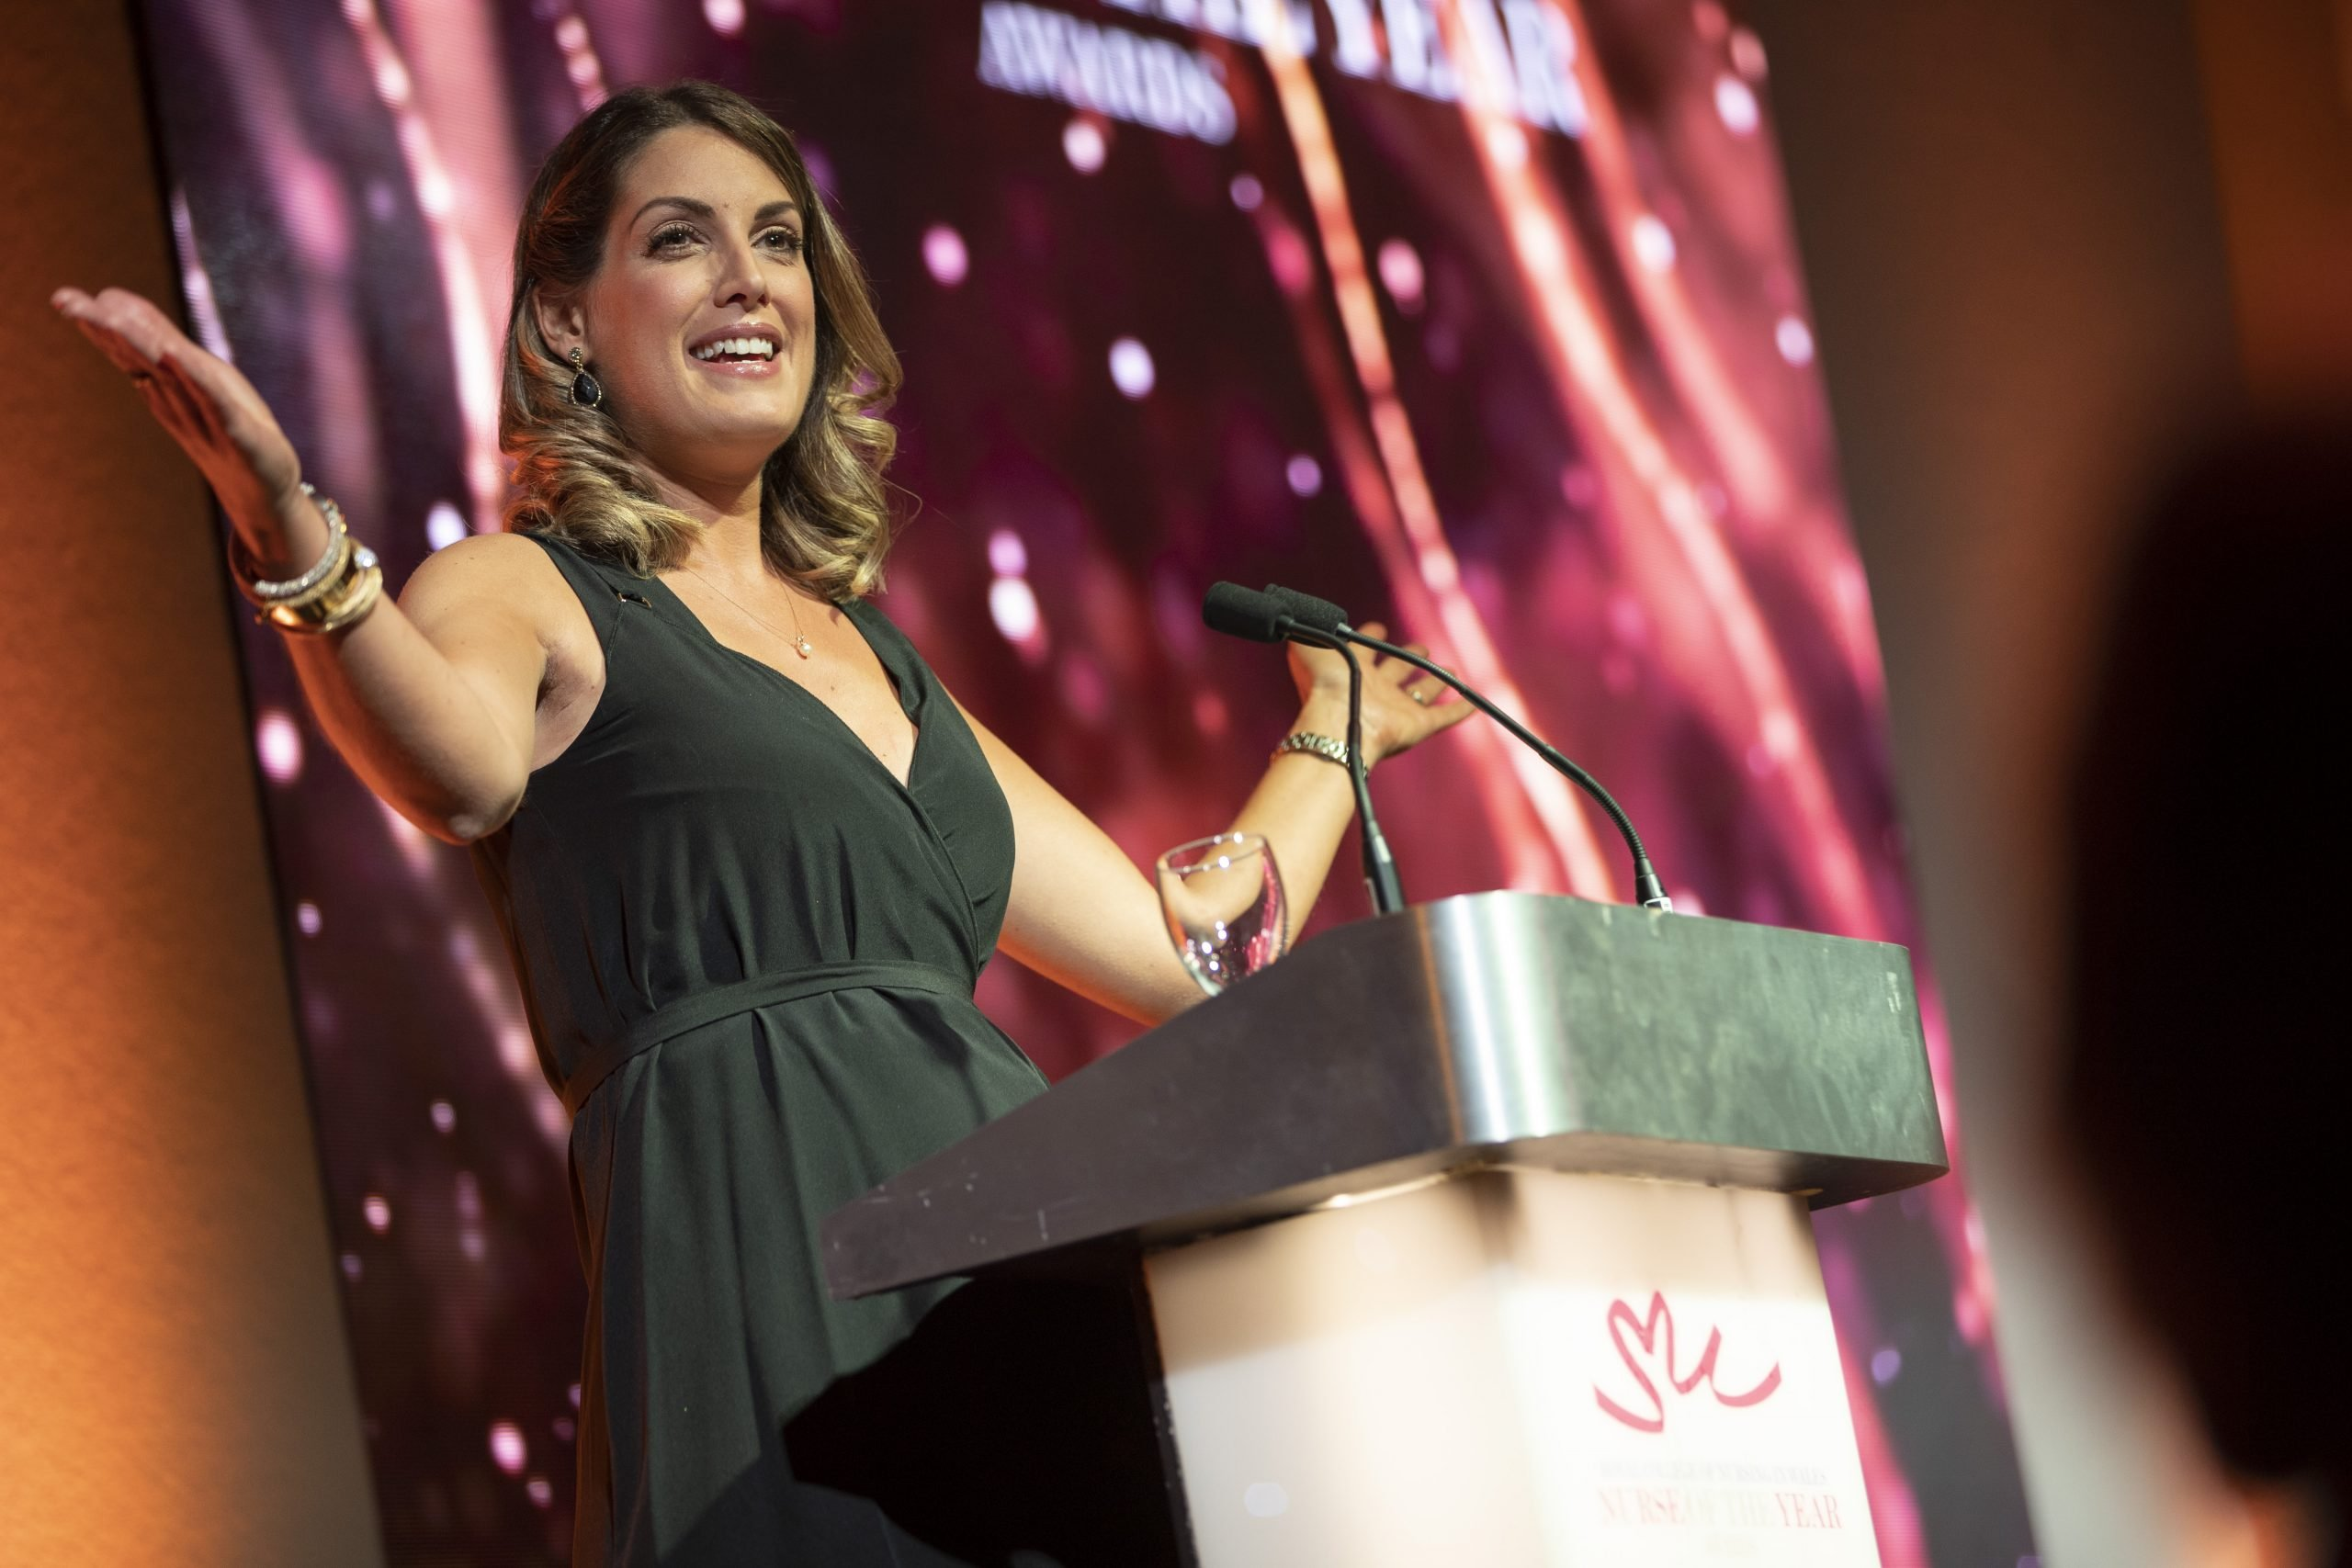 Andrea Byrne TV presenter and awards host